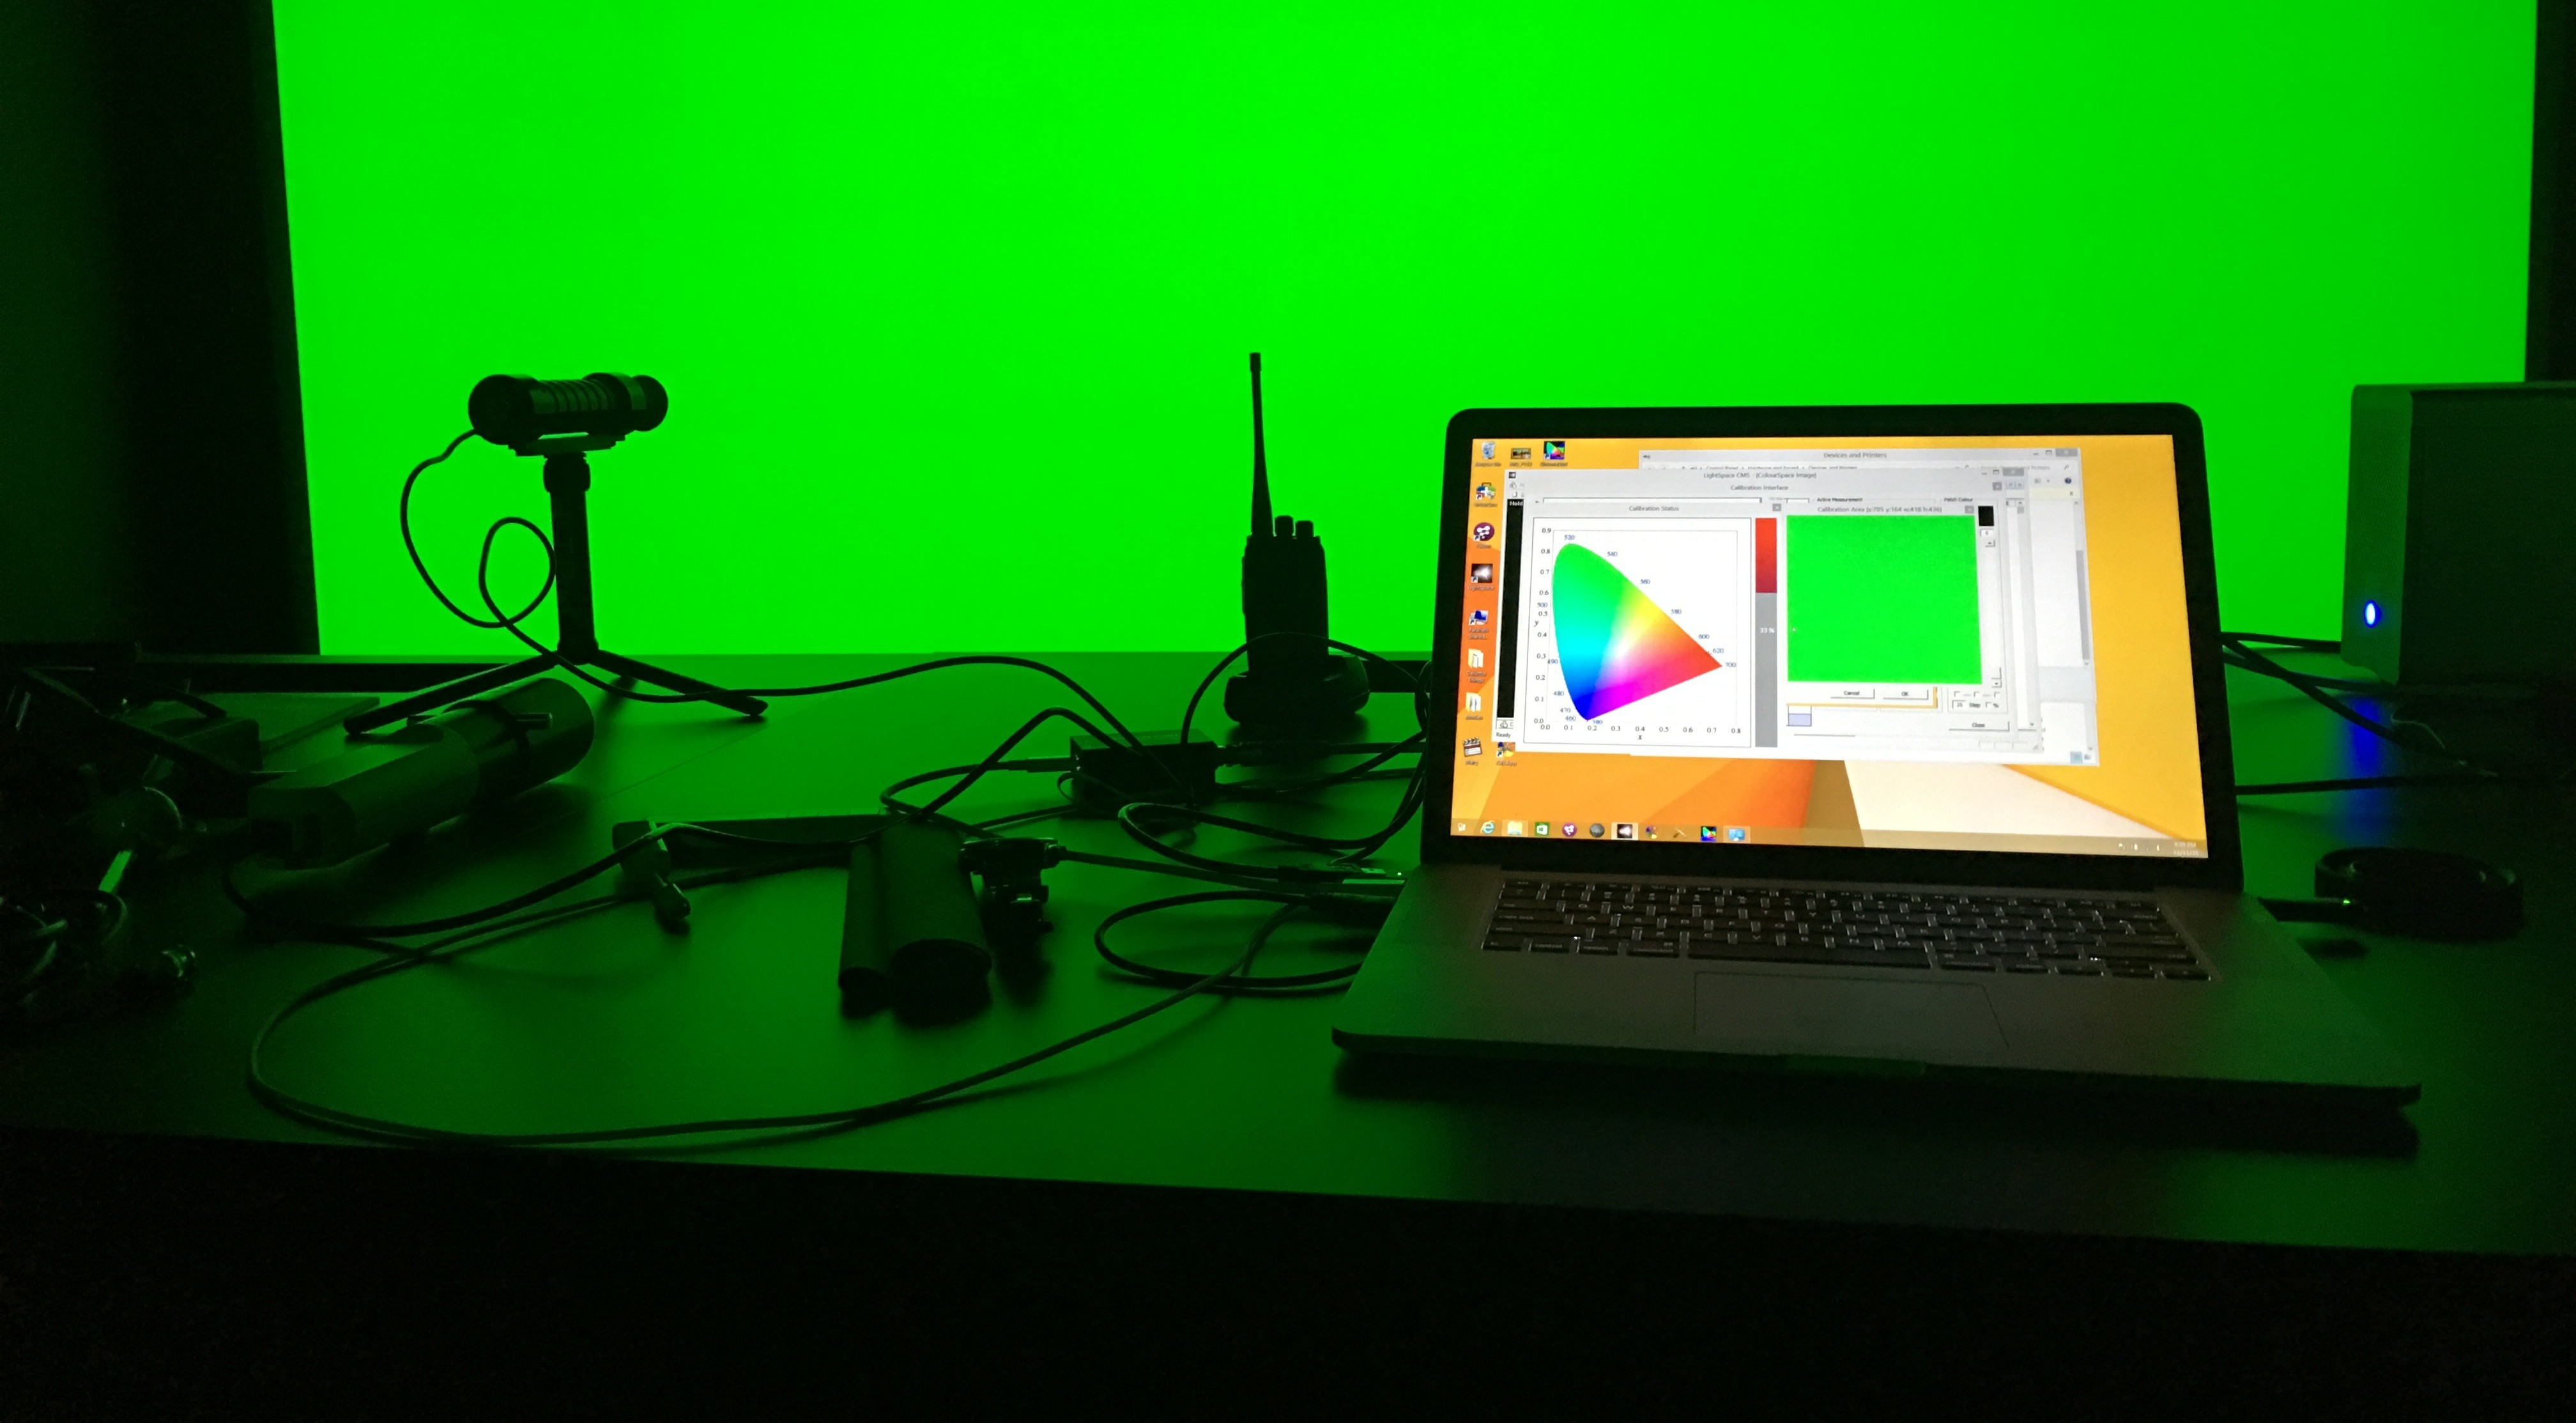 Using the CR-250 with LightSpace to calibrate a theater screen.